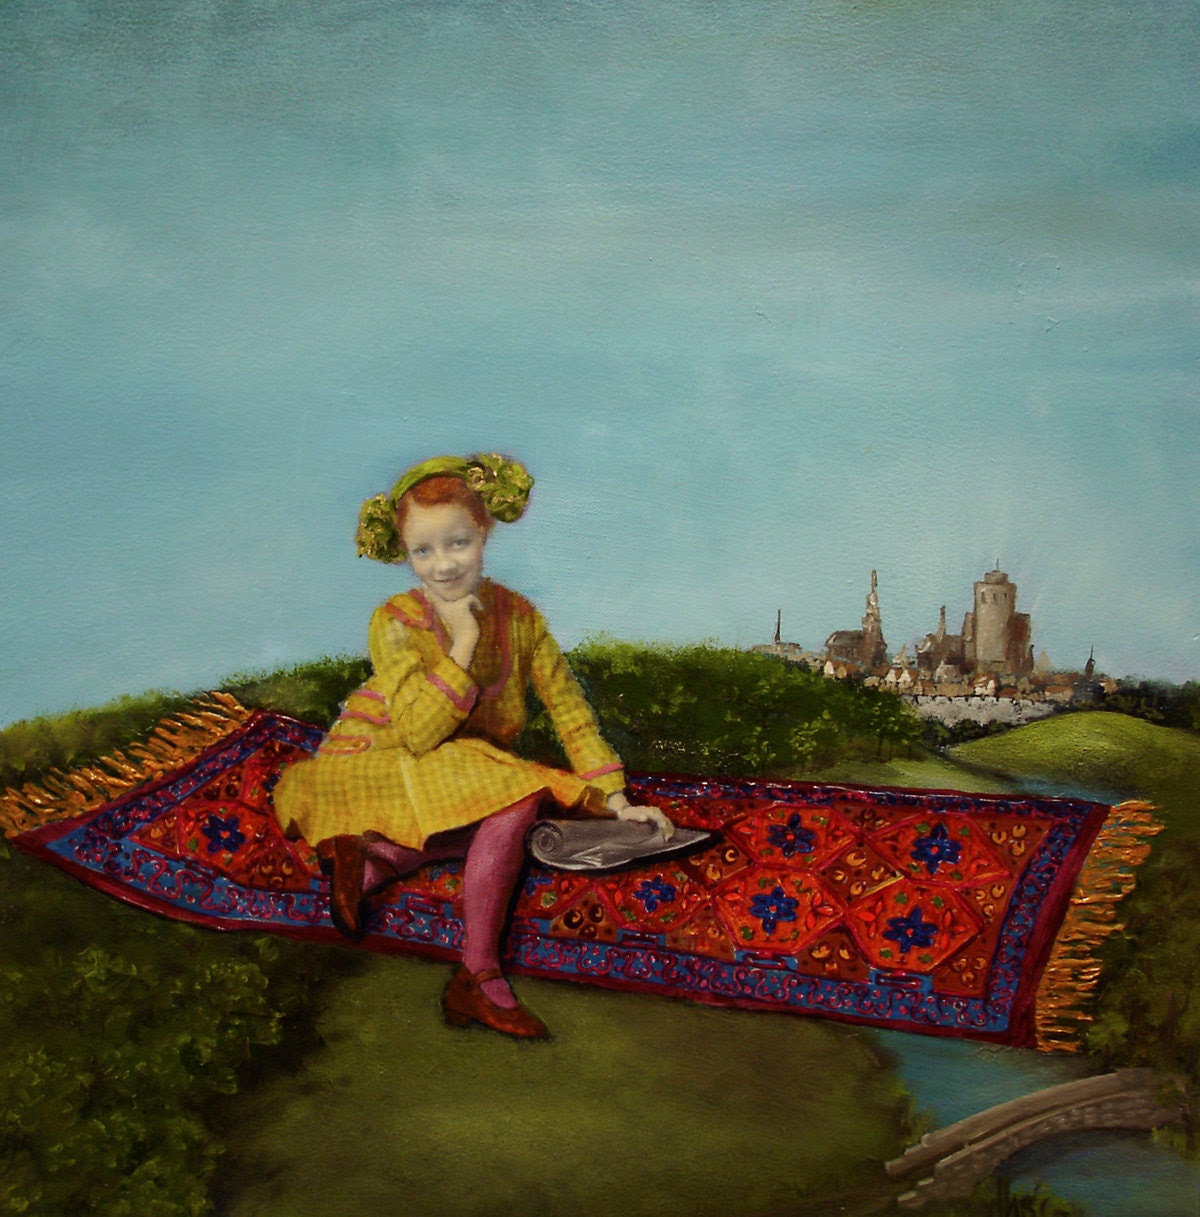 Magic Carpet Art PRINT, Girl, Flying Carpet, magical, fantasy, flying, Victorian, castles, 8 x 8 archival